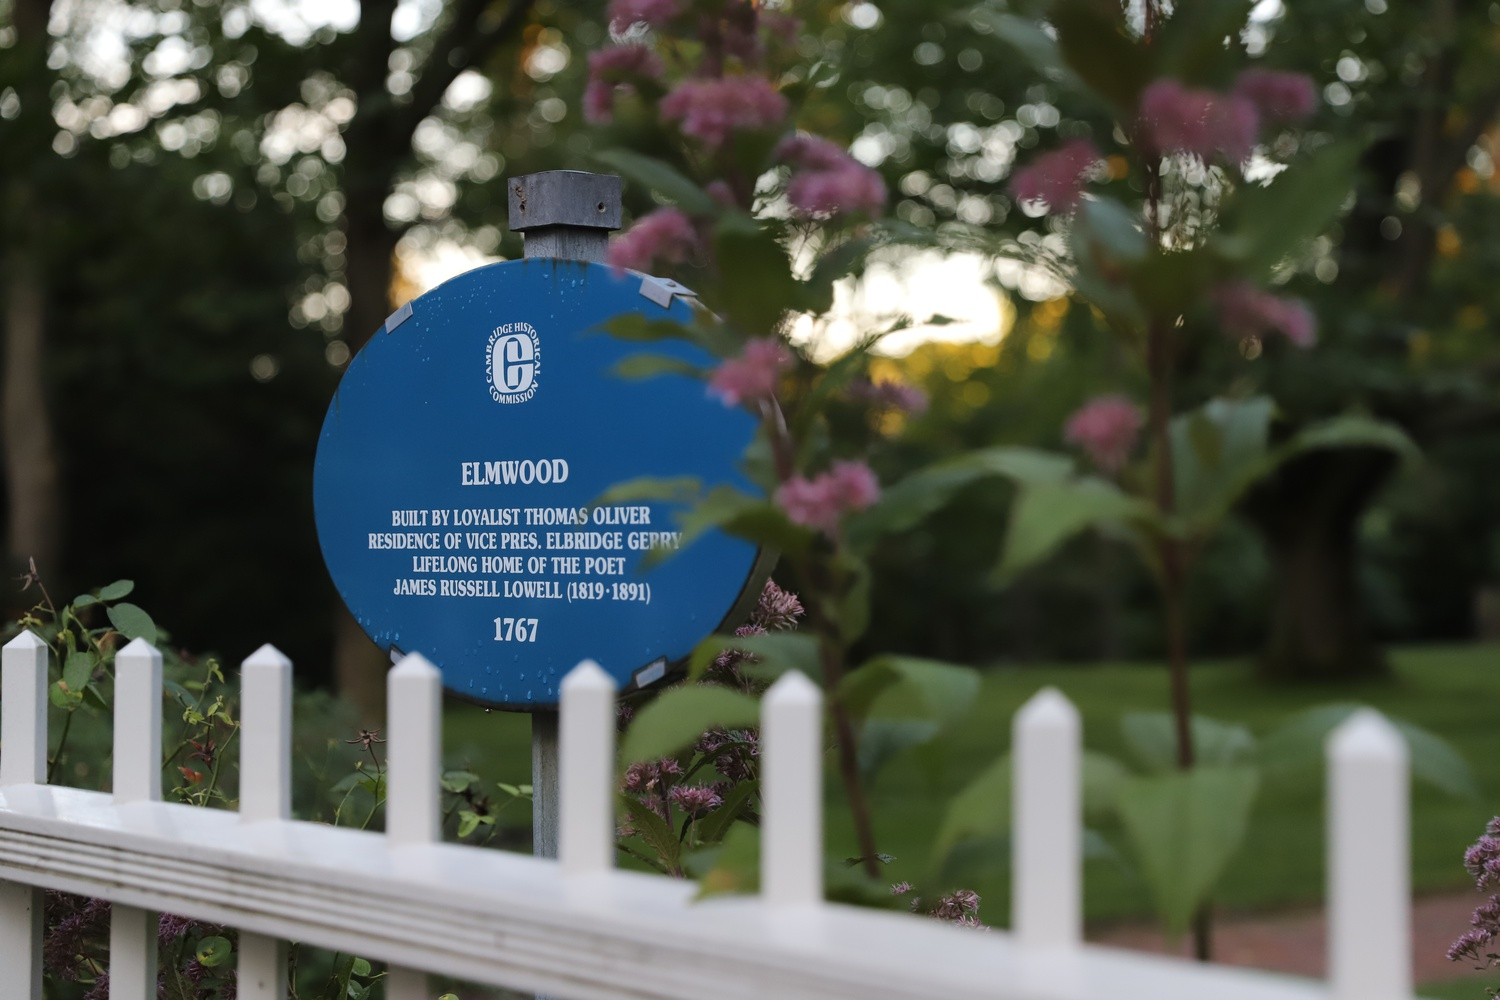 Harvard's presidents have resided at 33 Elmwood Avenue since 1971.